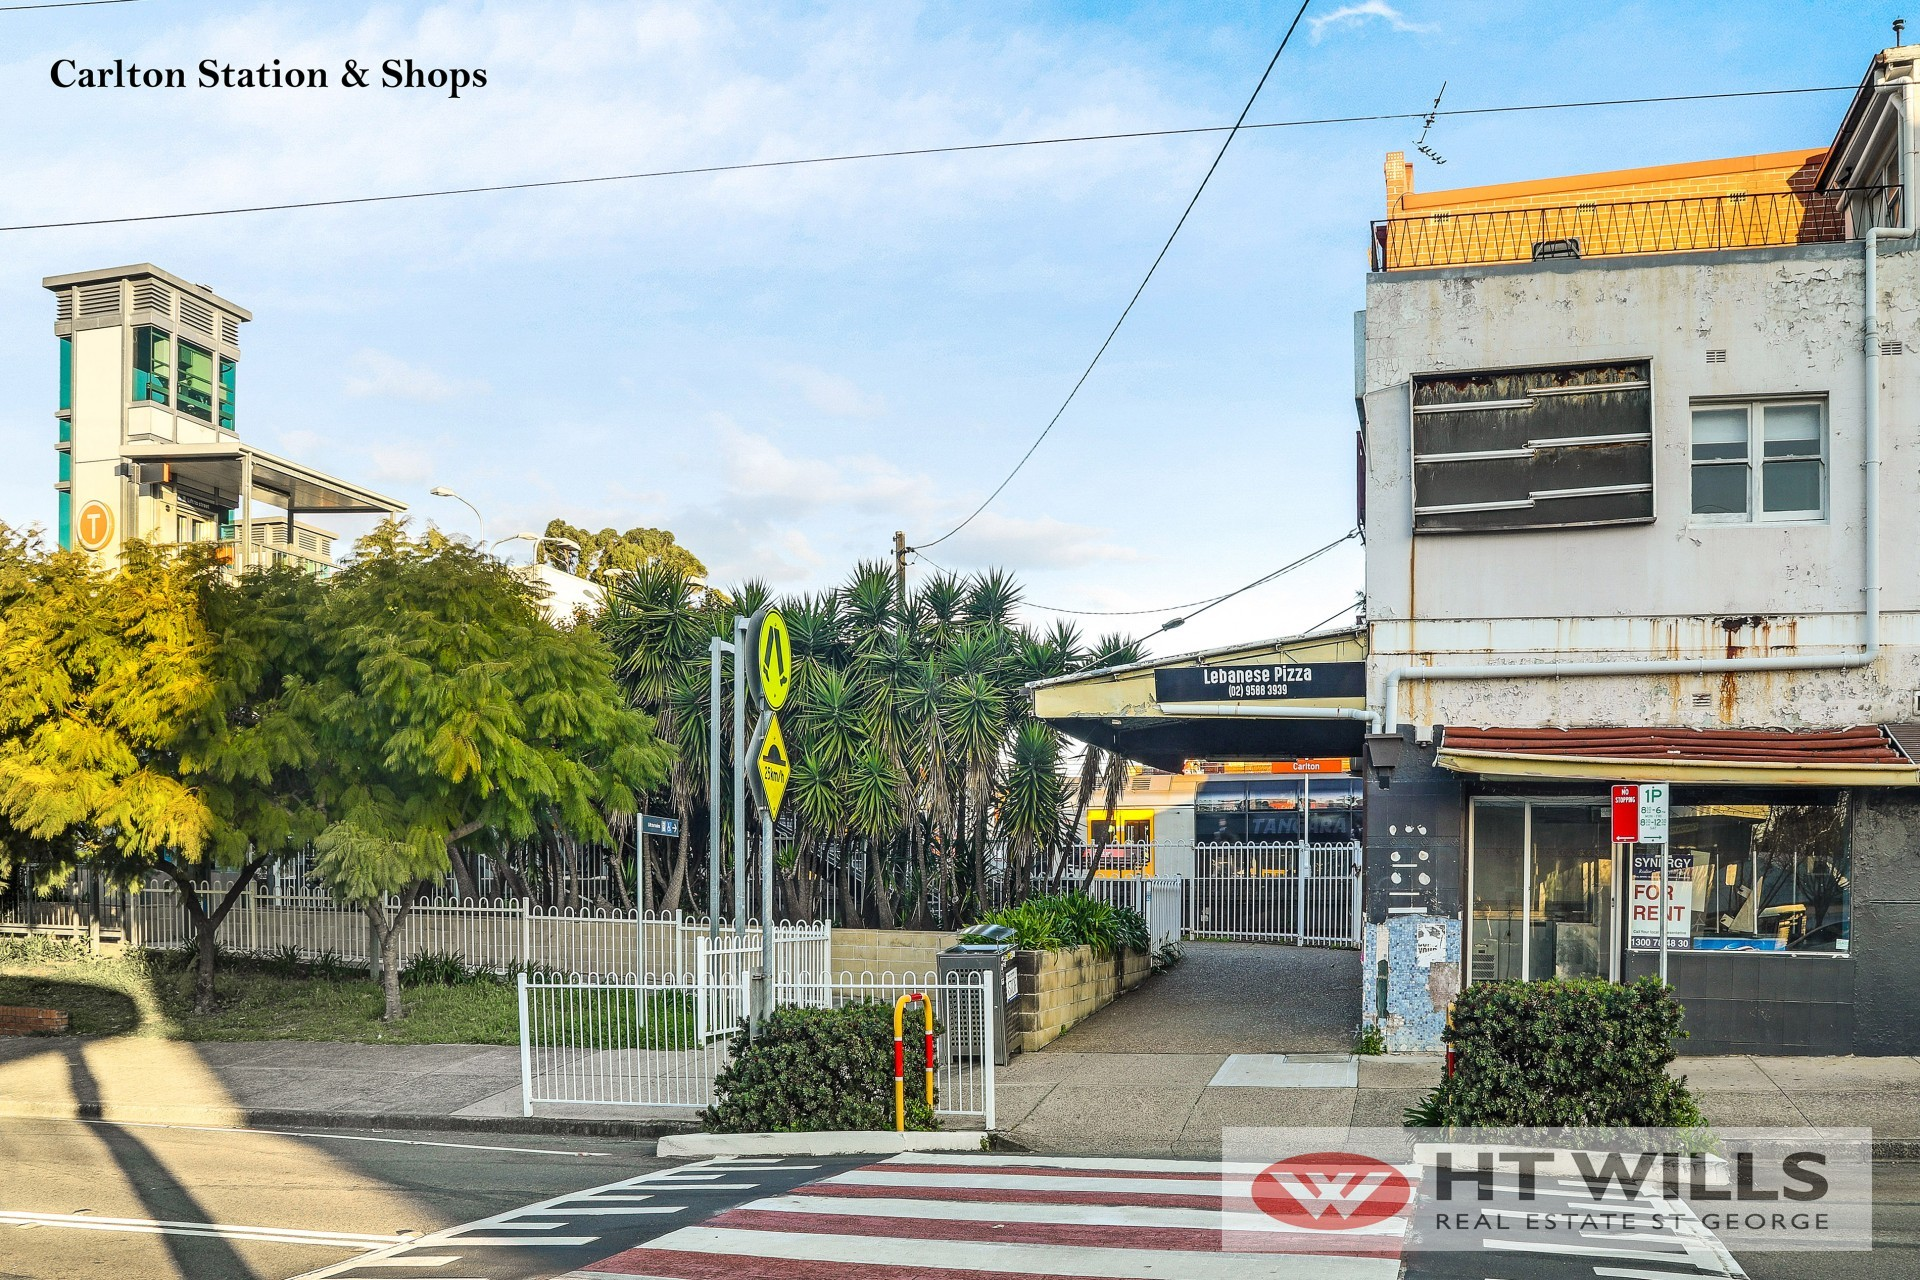 Image: Walking distance to Carlton station and shops